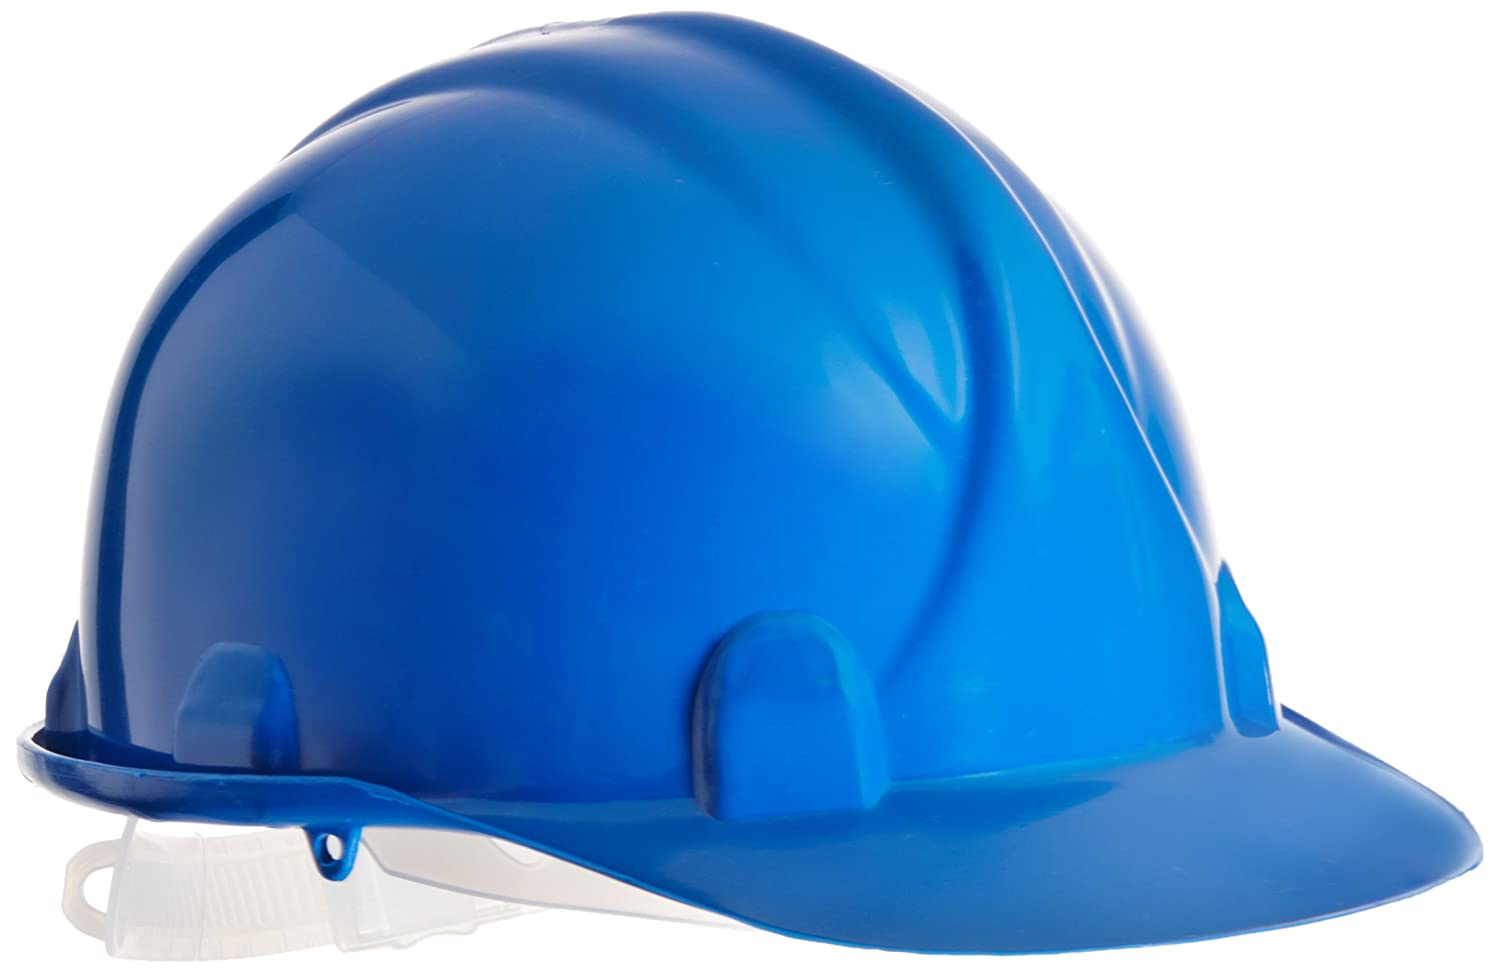 AES s.1481-b casco de seguridad, color azul: Amazon.es: Industria, empresas y ciencia